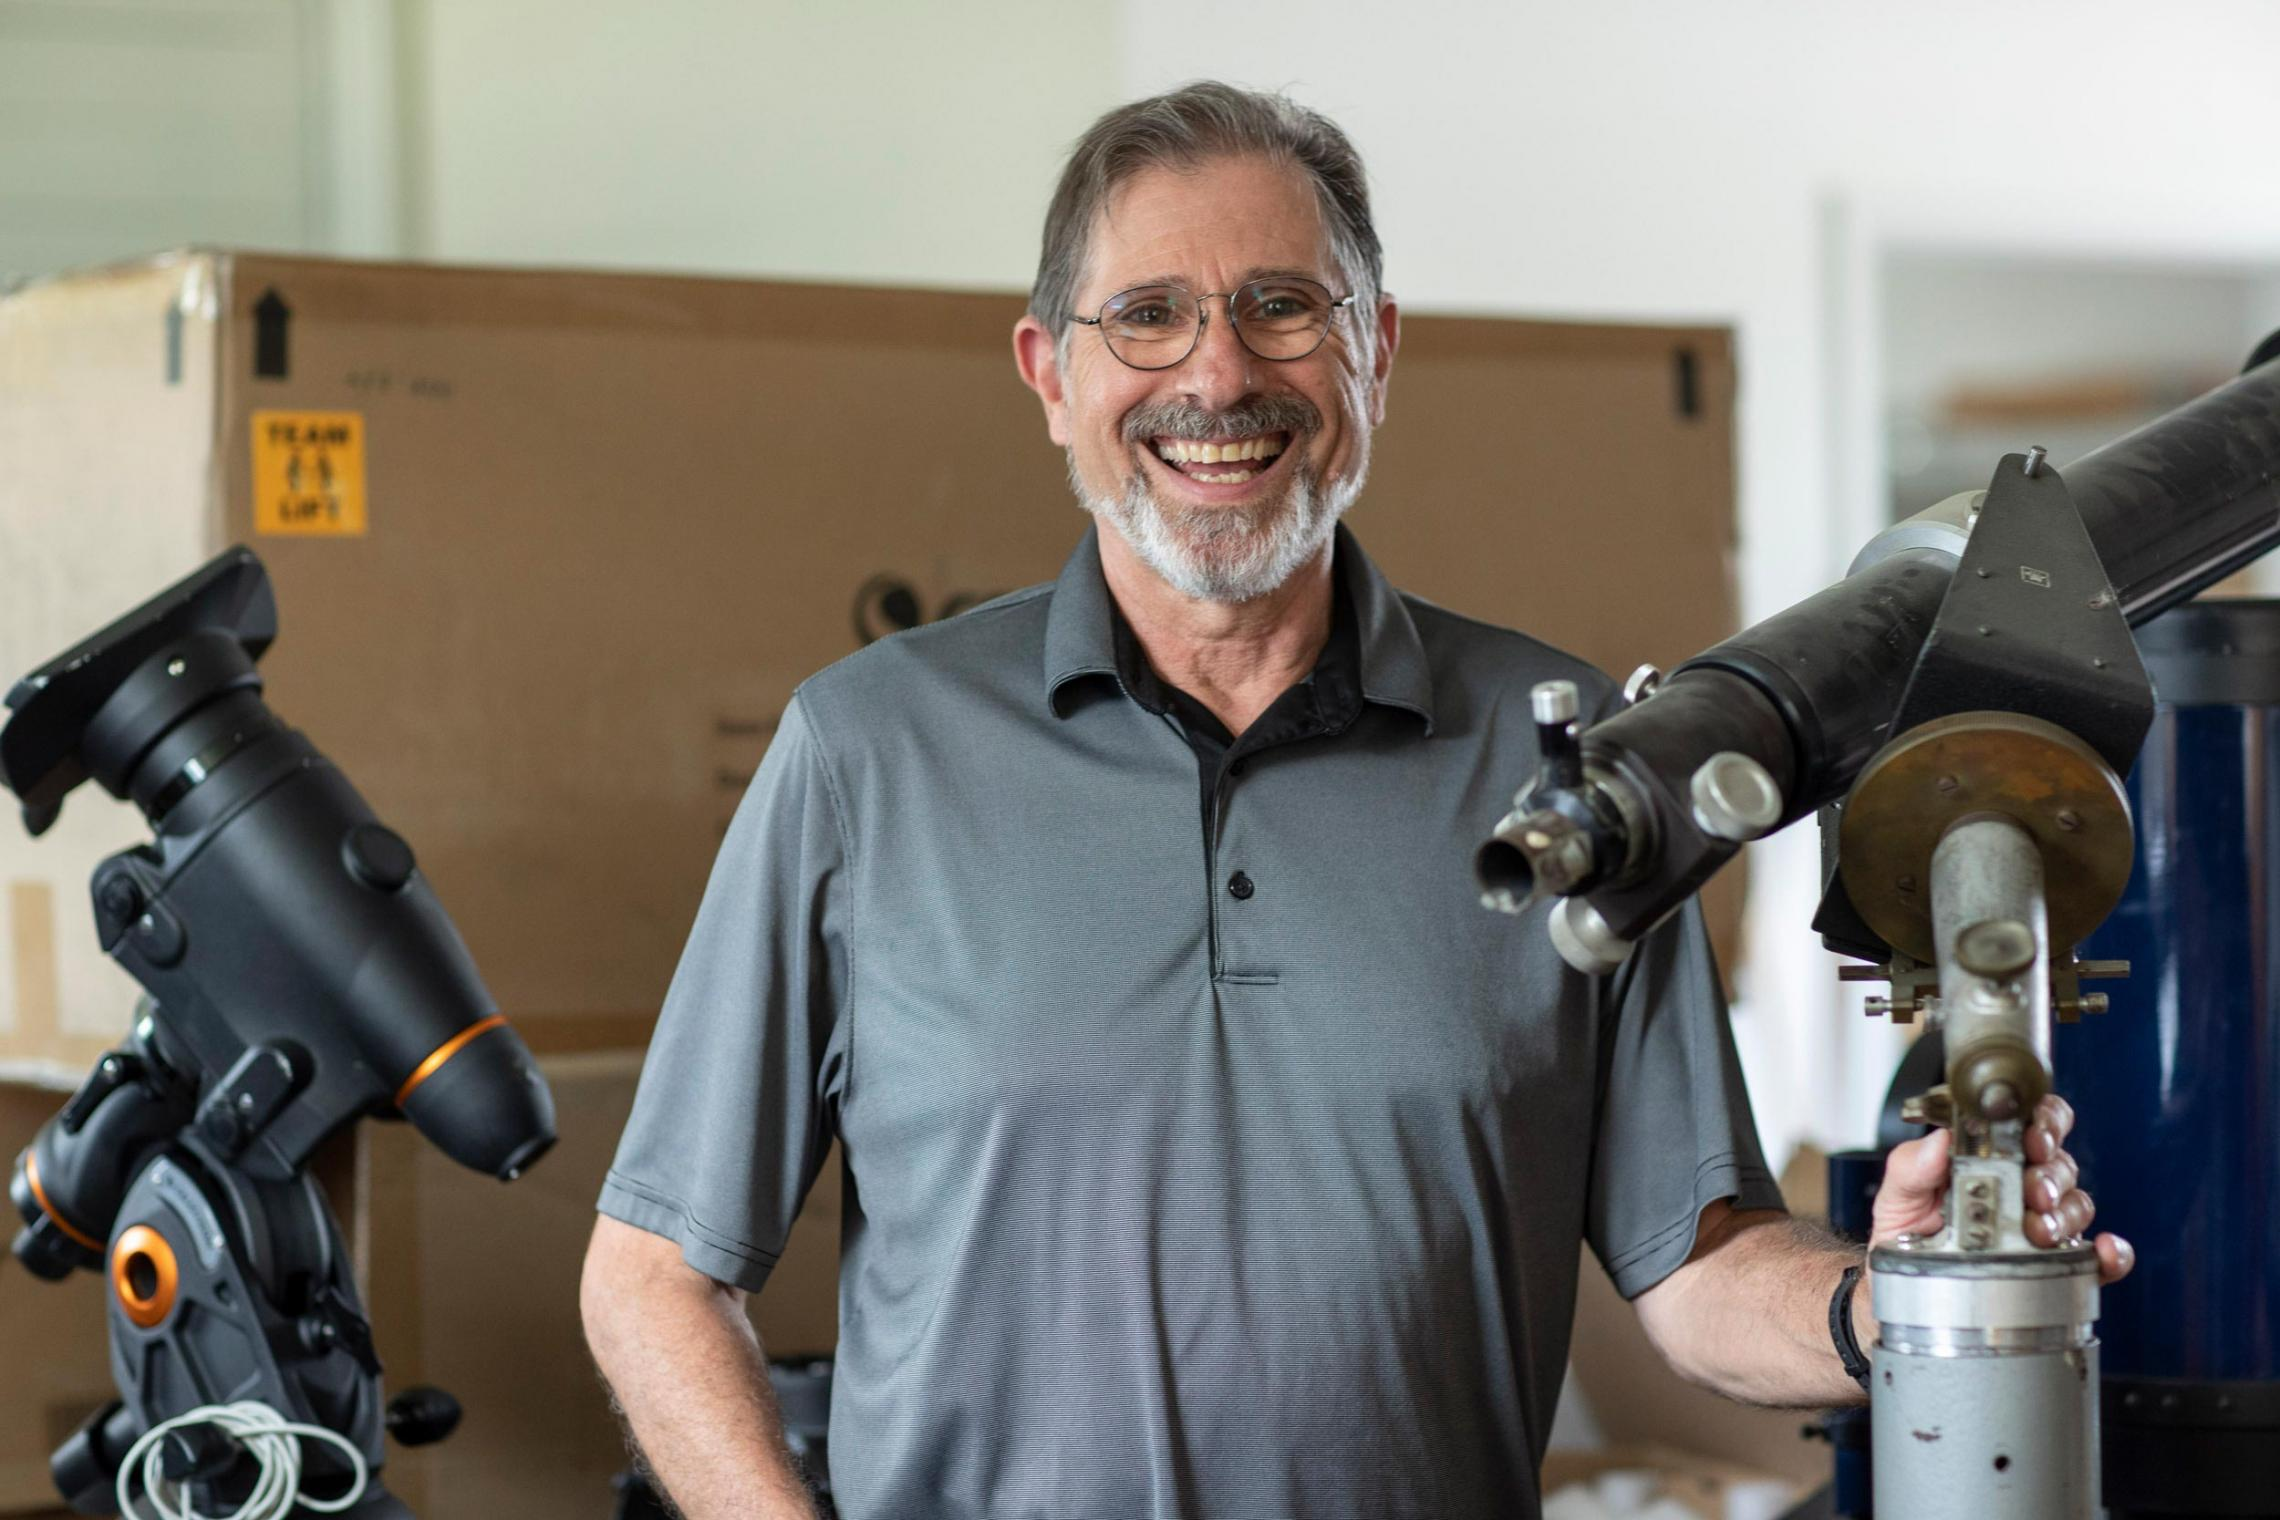 Steve Layman, an amateur astronomer who's made a career in music, works with the astronomy department to bring telescopes to schools and Scouts. (Photo by Sanjay Suchak, University Communications)